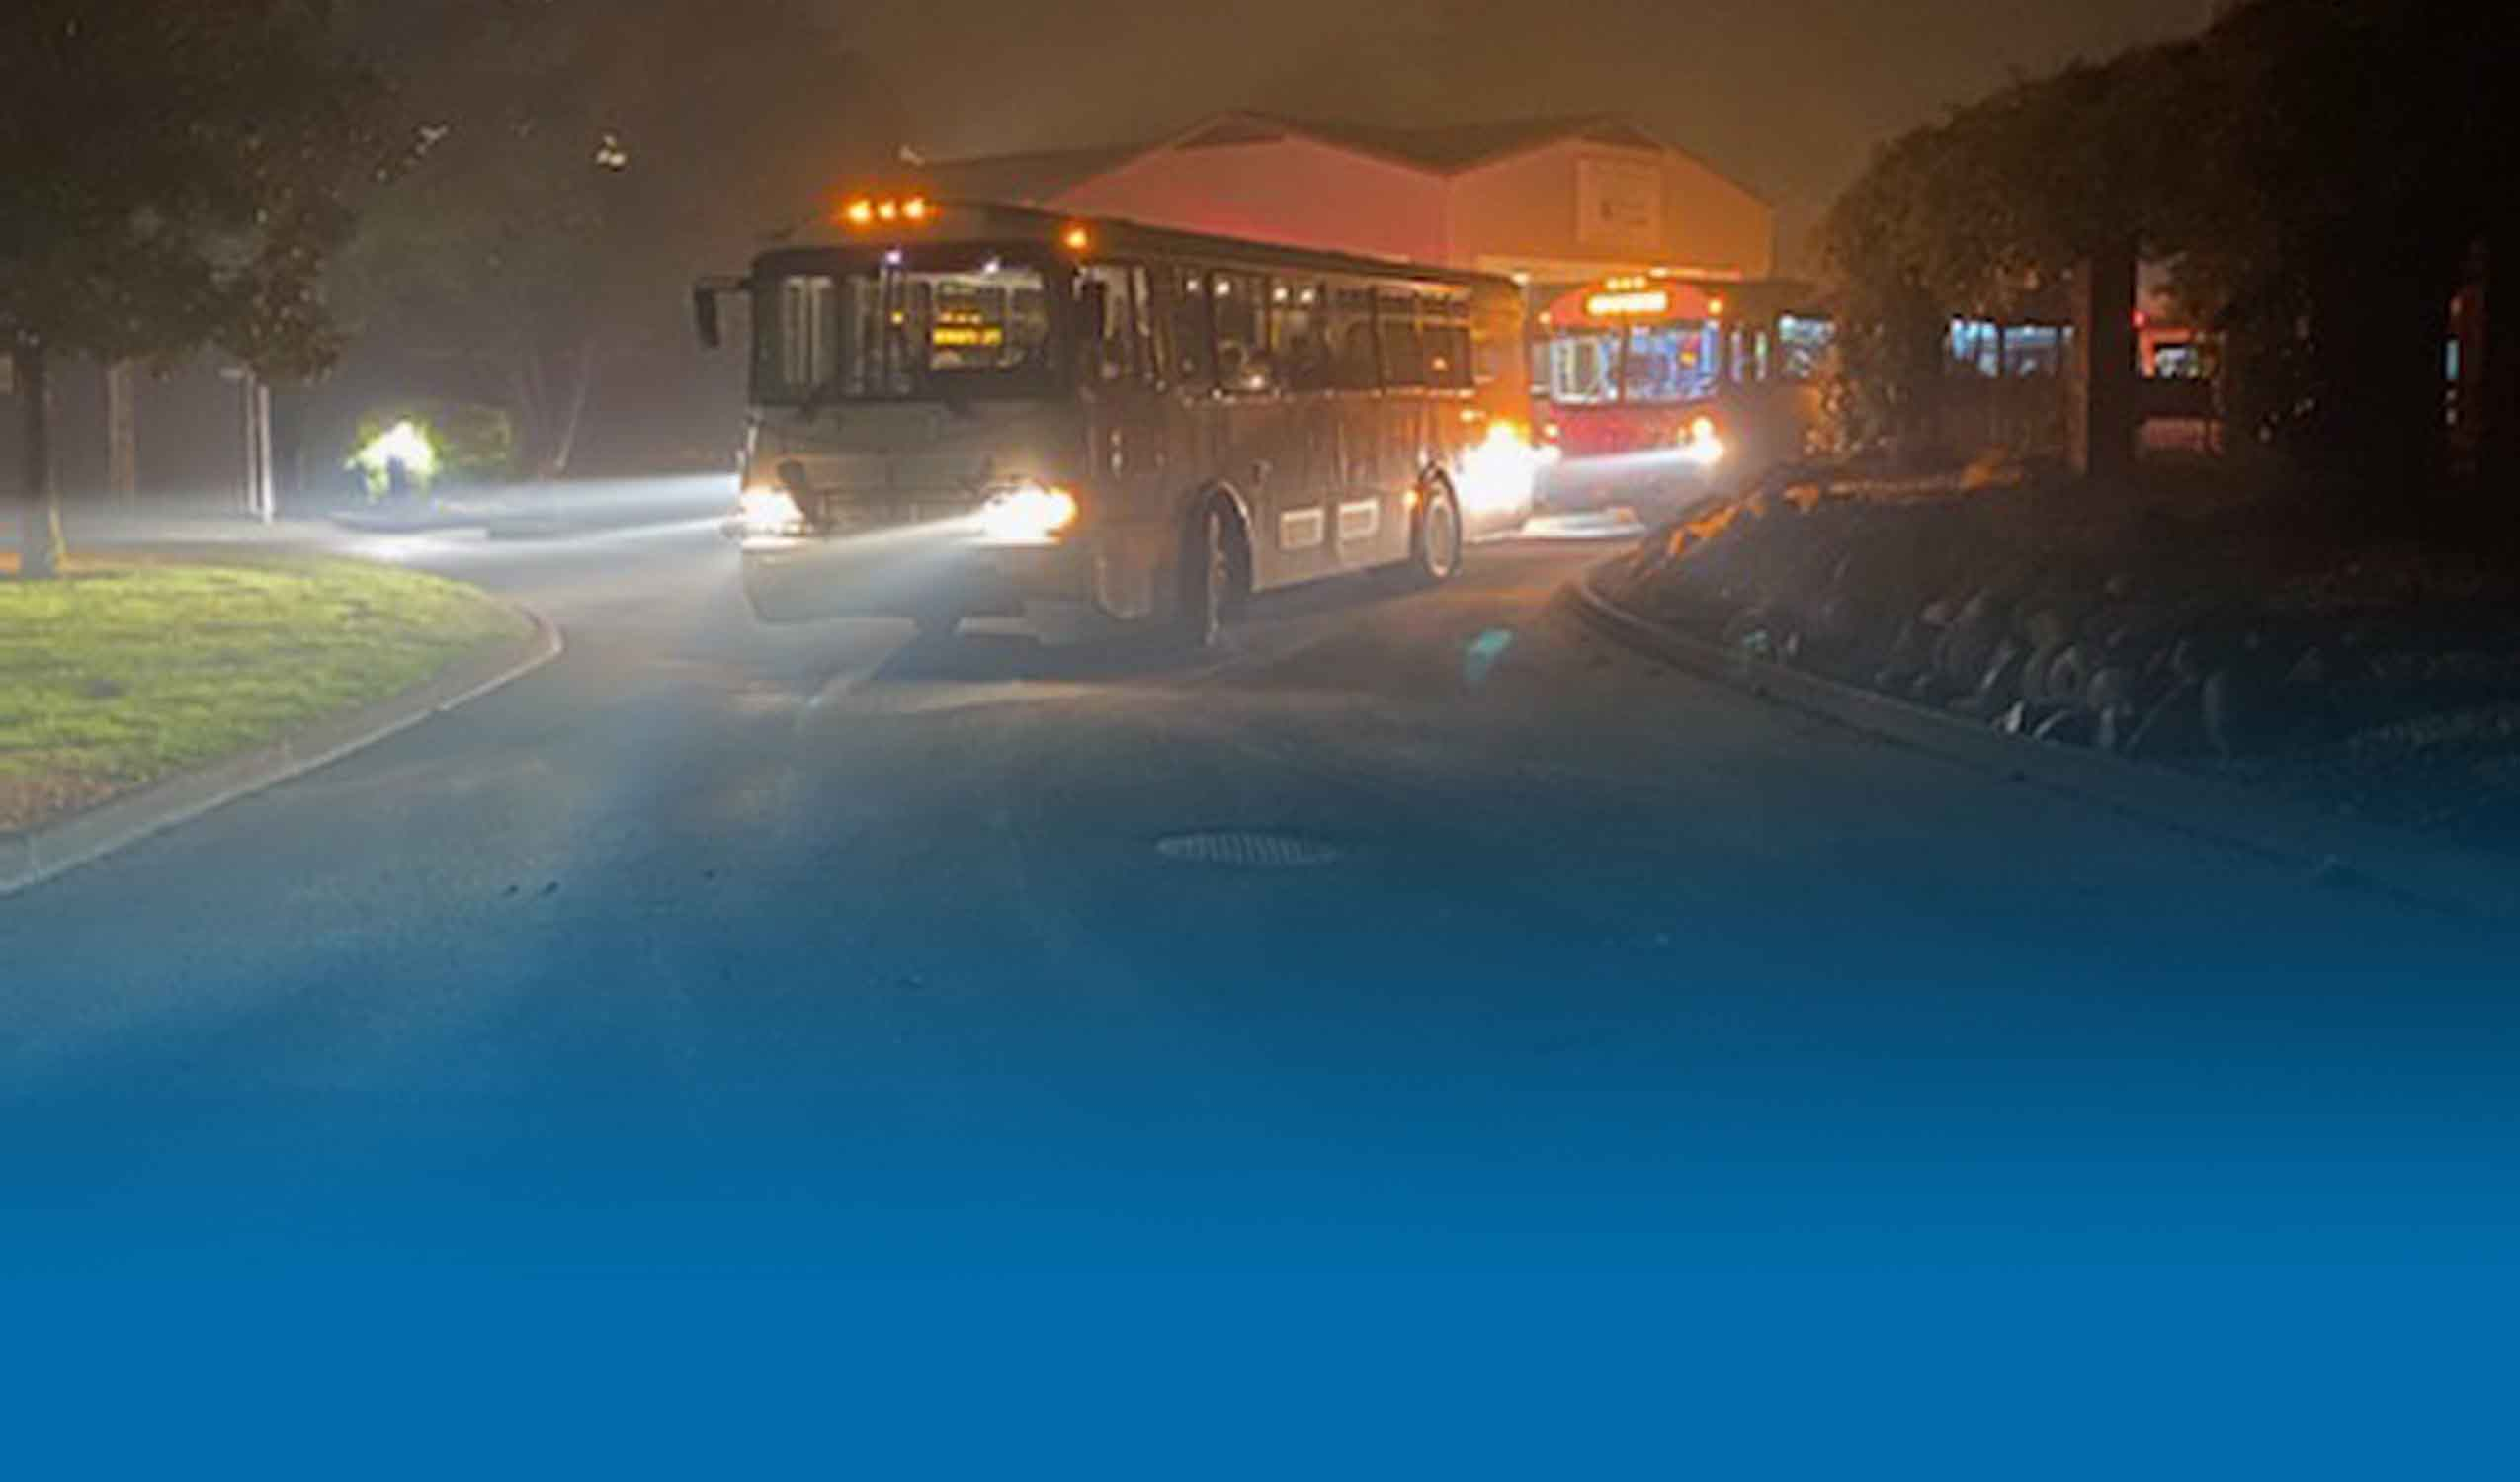 Regional Bus Aiding in Evacuation